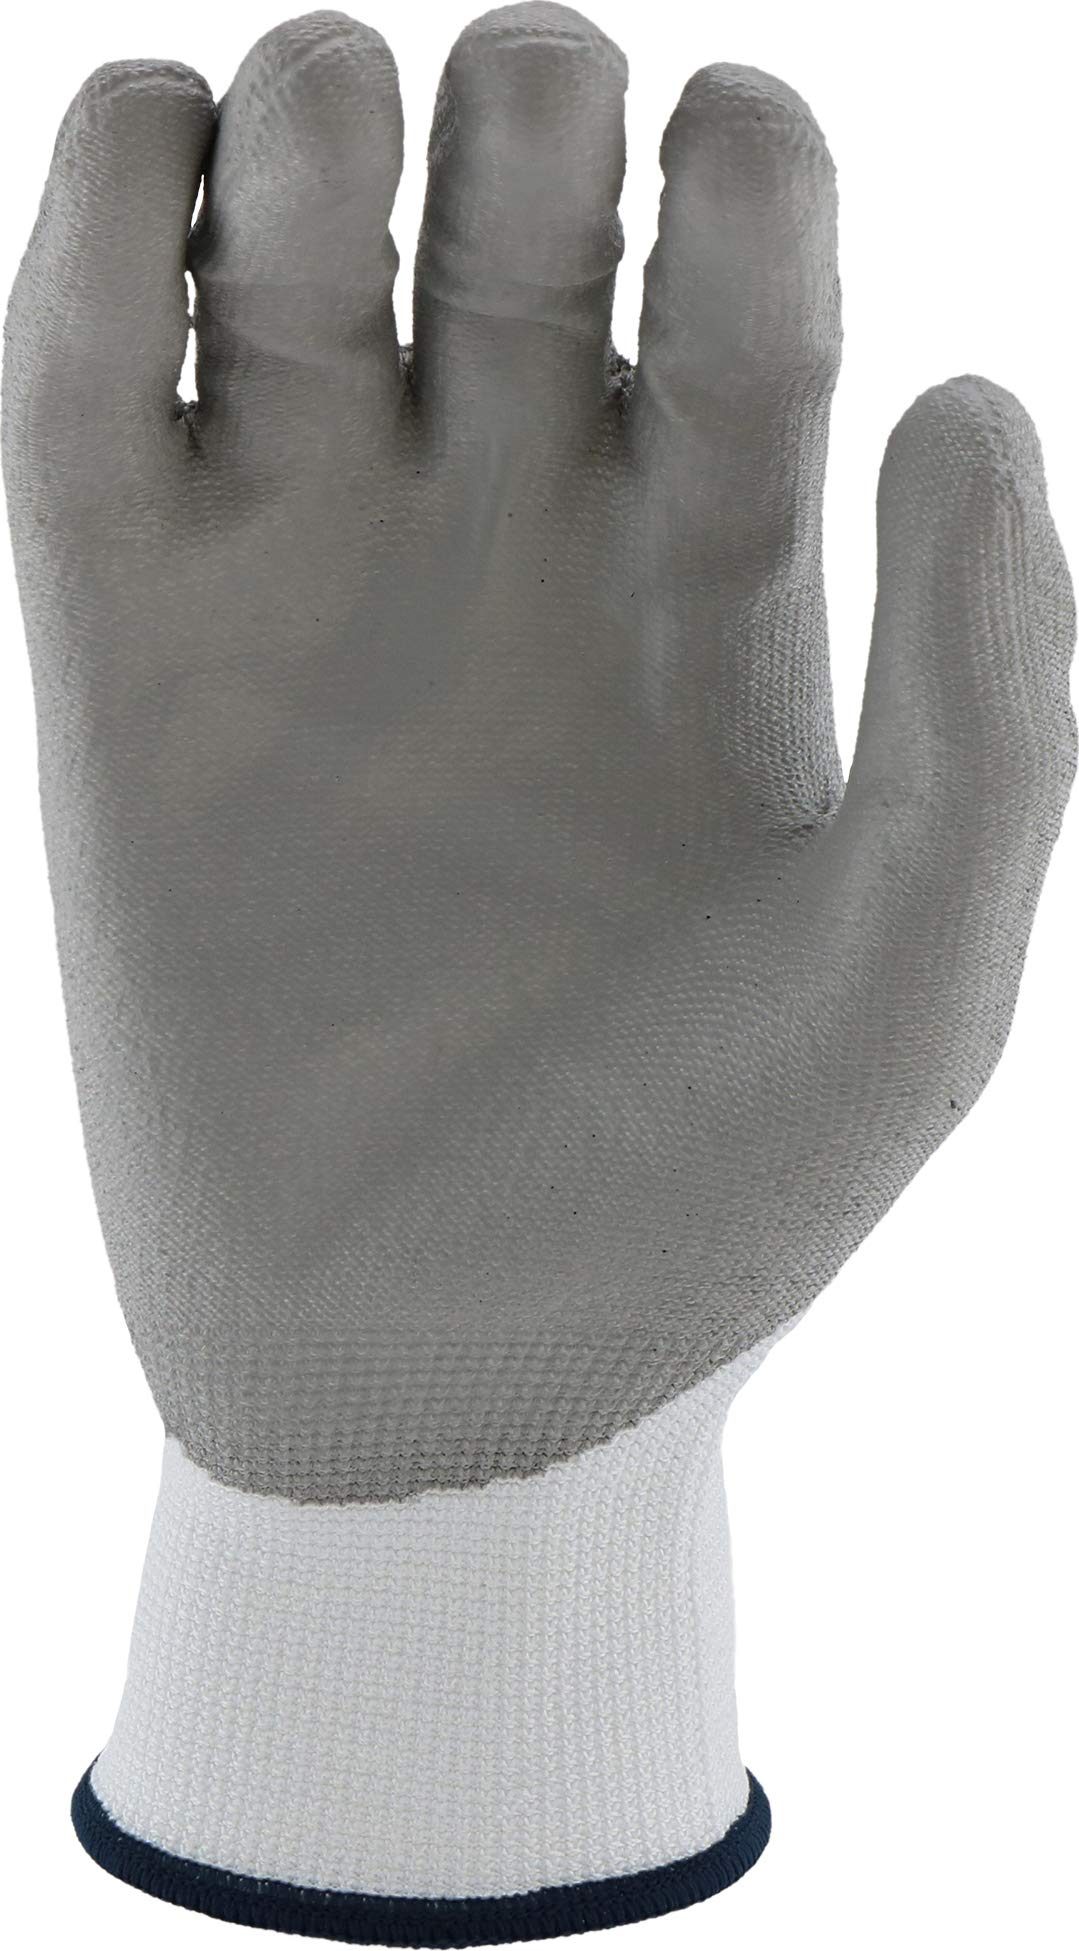 West Chester 713HGWU XL Barracuda White HPPE Shell with Grey PU Dip Cut Protection Gloves, XL (Pack of 12) by West Chester (Image #4)